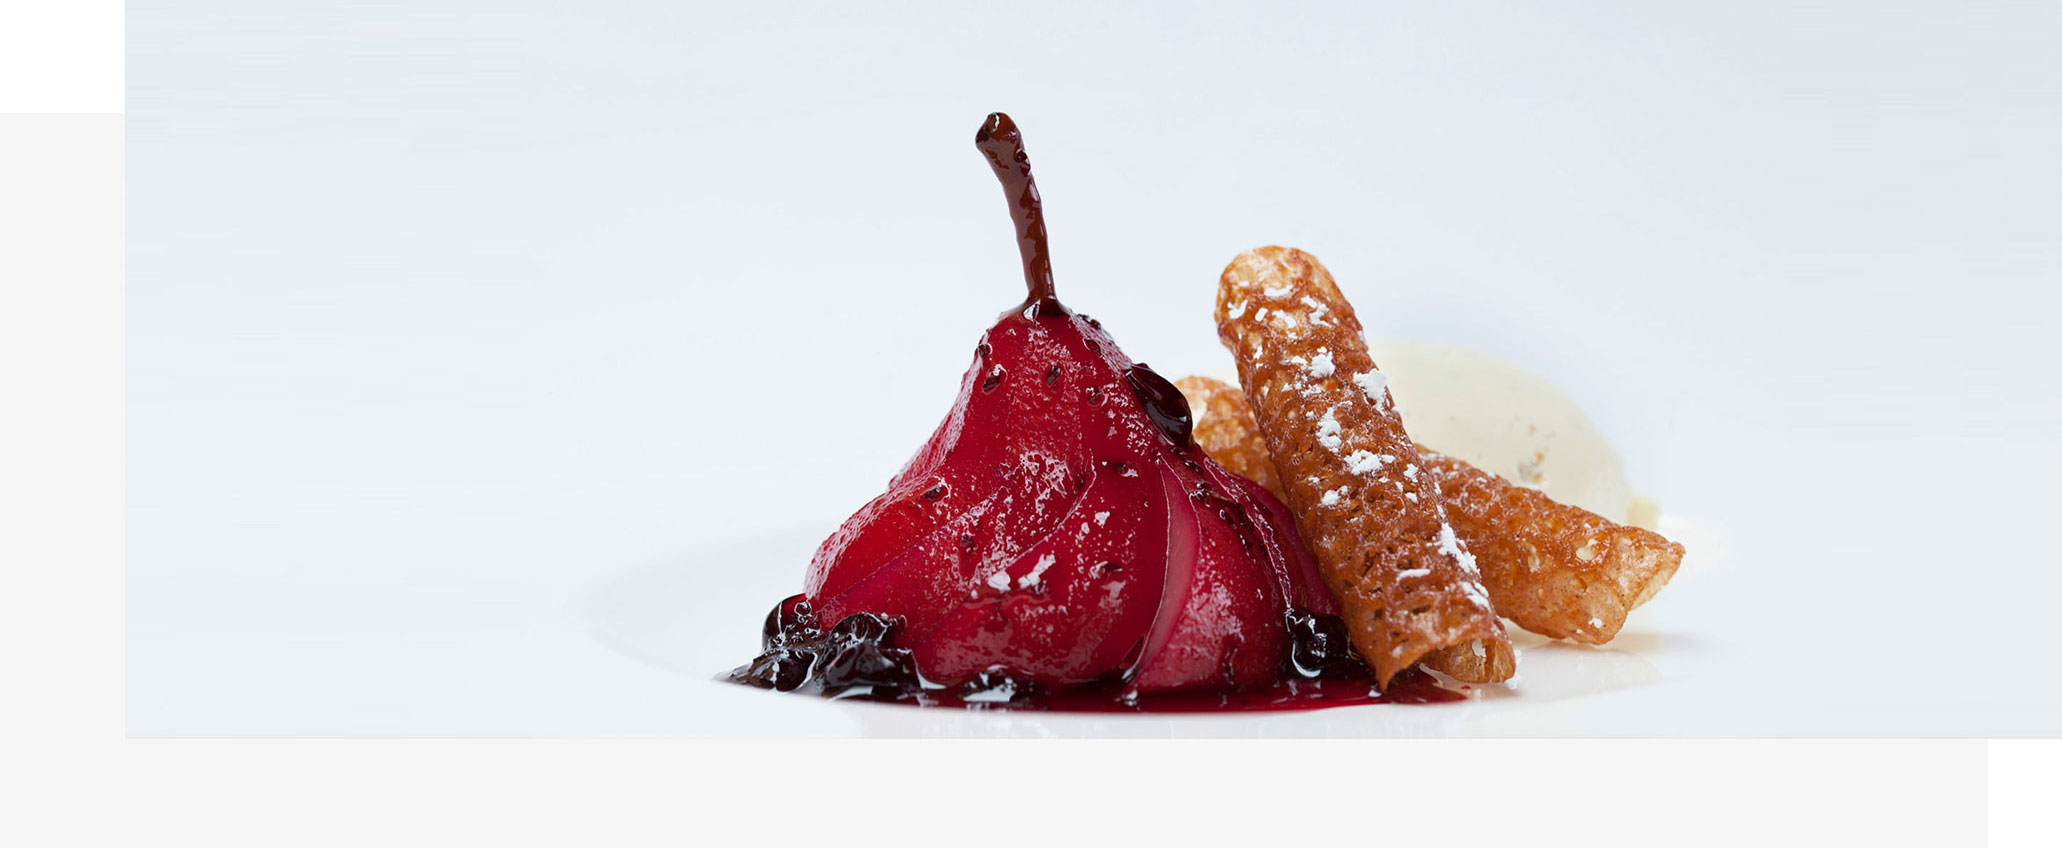 A blackcurrant poached pear served with brandy snap wafers and vanilla icecream, served in the Royal Opera House restaurants